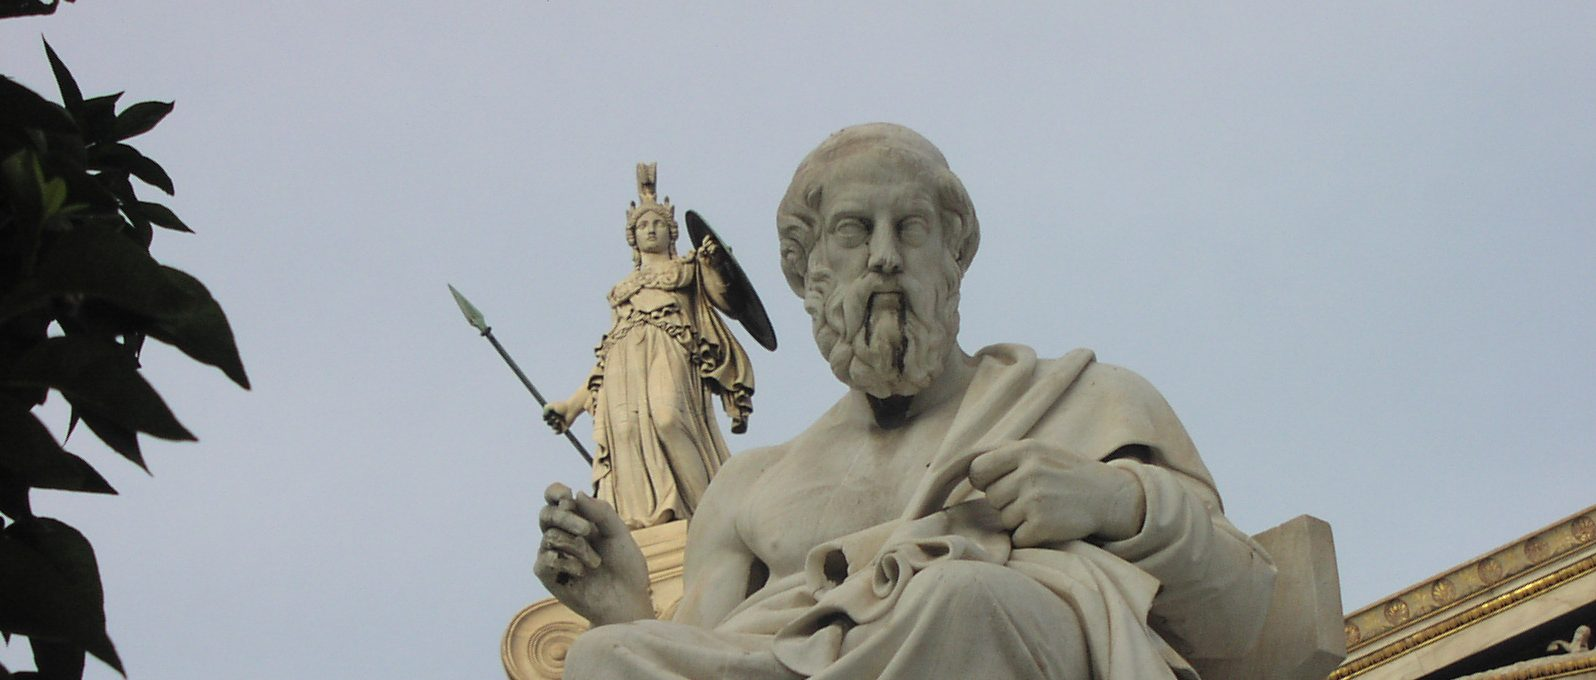 Athena looking over Plato